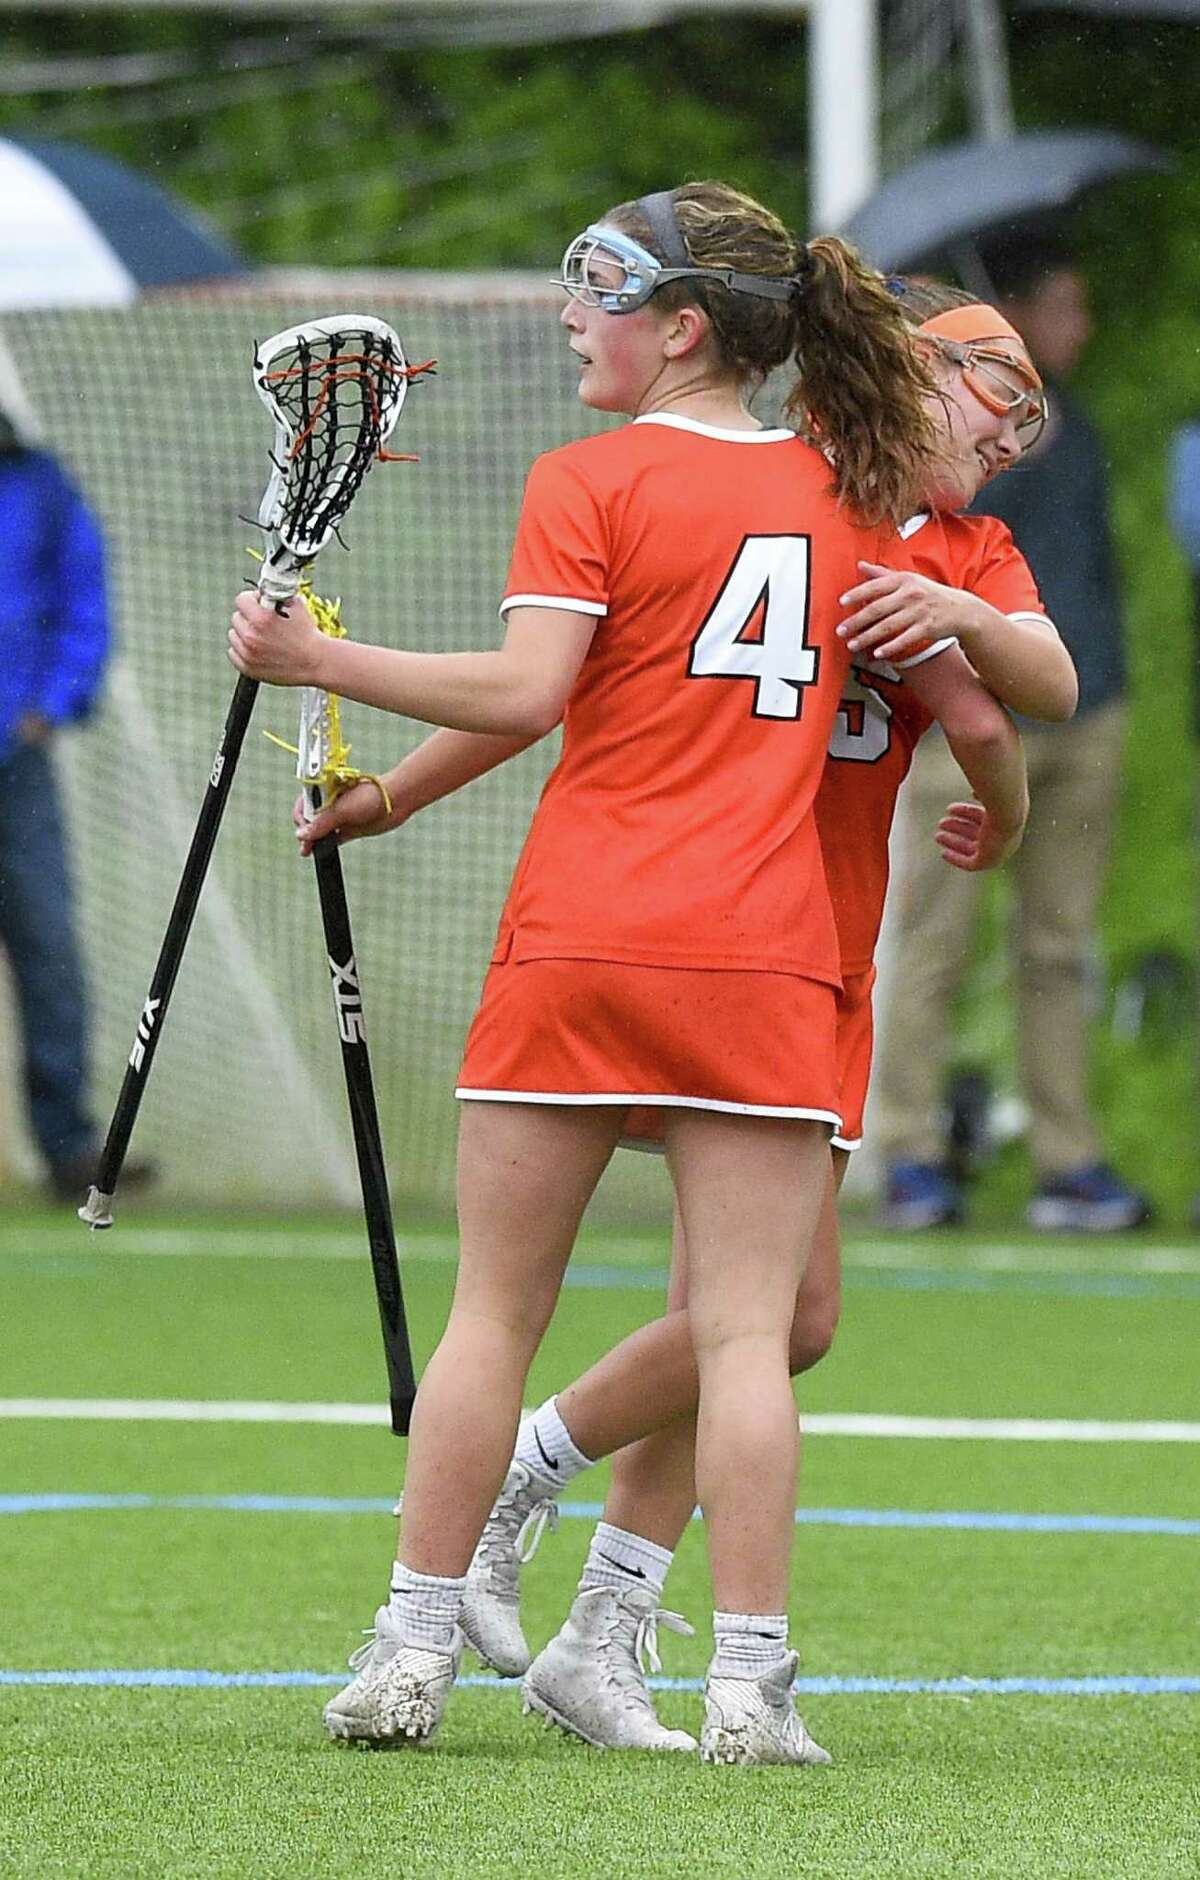 Ridgefield Caitlin Slaminko (4) celebrates her goal against Wilton with teammate Riley Peters in a girls lacrosse game at Wilton High School on May 14, 2019 in Wilton, Connecticut. Ridgefield defeated Wilton 10-8.